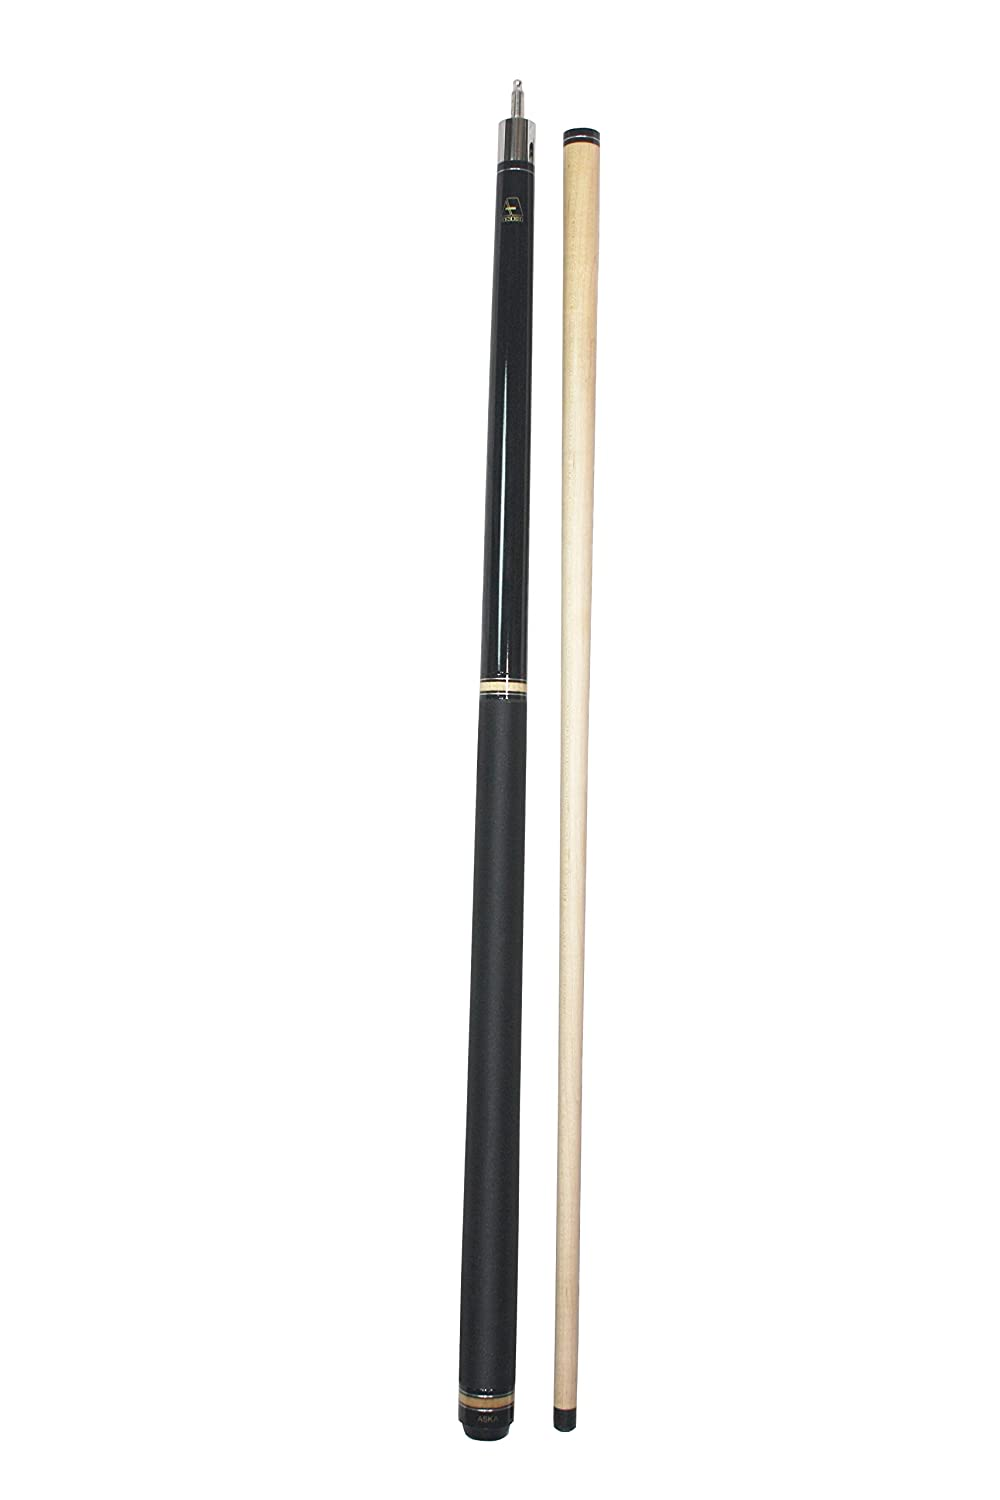 25-Ounce Jump Break Cue Stick Aska JBC Black, 3pc Cue, Jump/Break Cue ASKA BILLIARDS